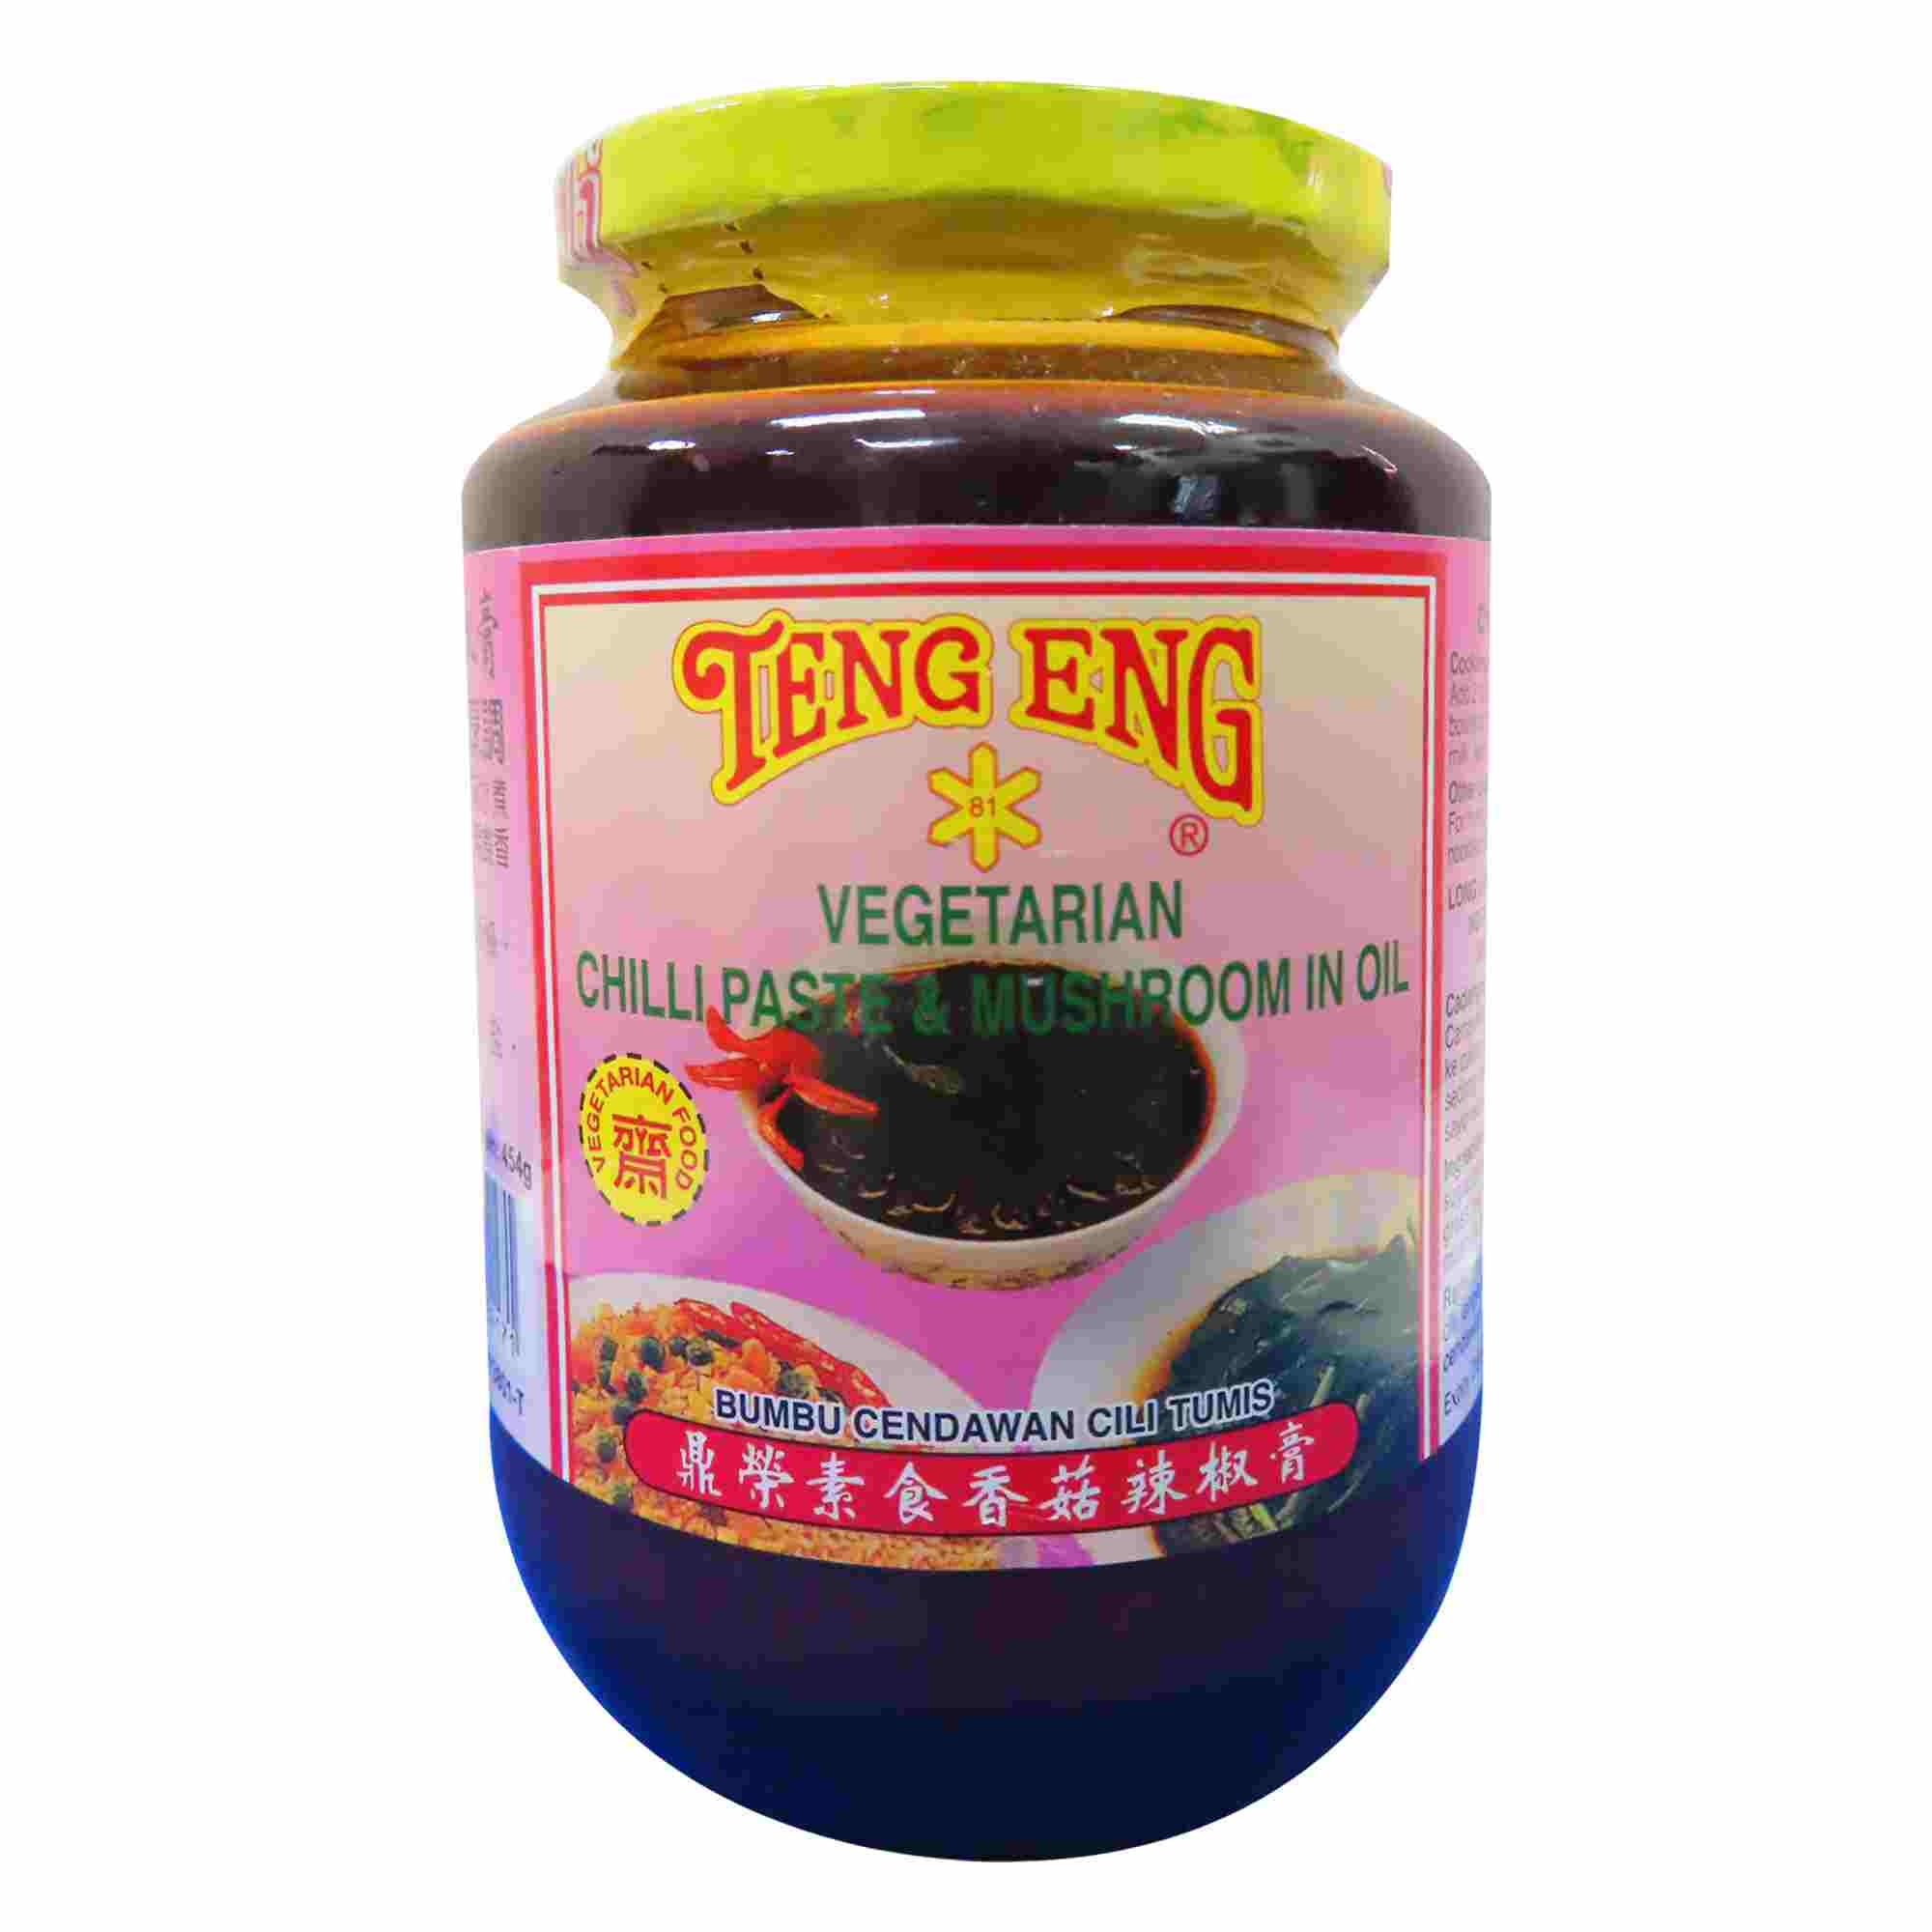 Image Vegetarian Chili Paste and mushroom 鼎荣-香菇辣椒膏 454grams